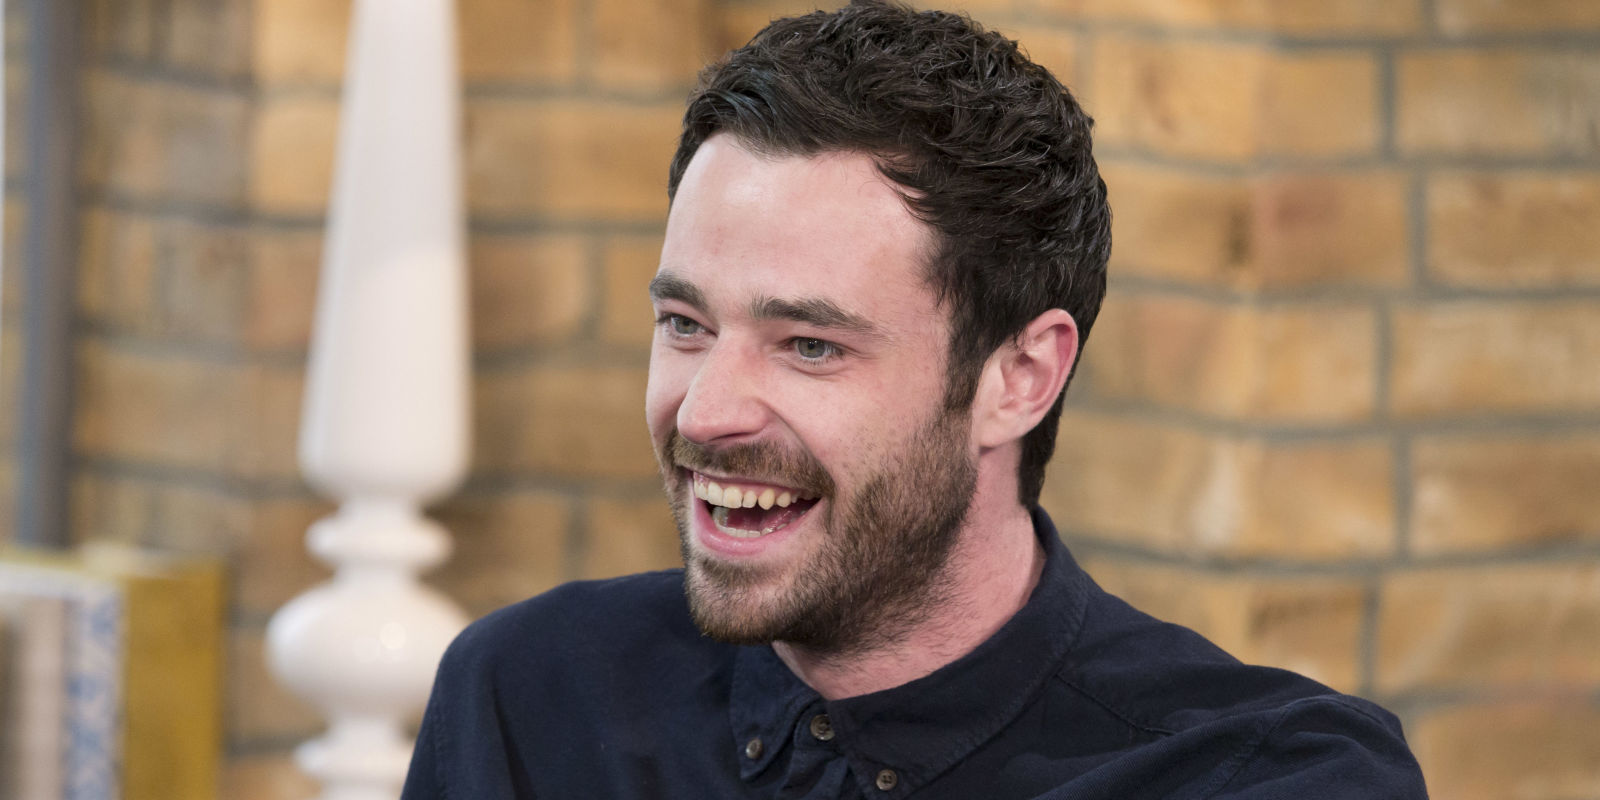 sean ward - photo #12